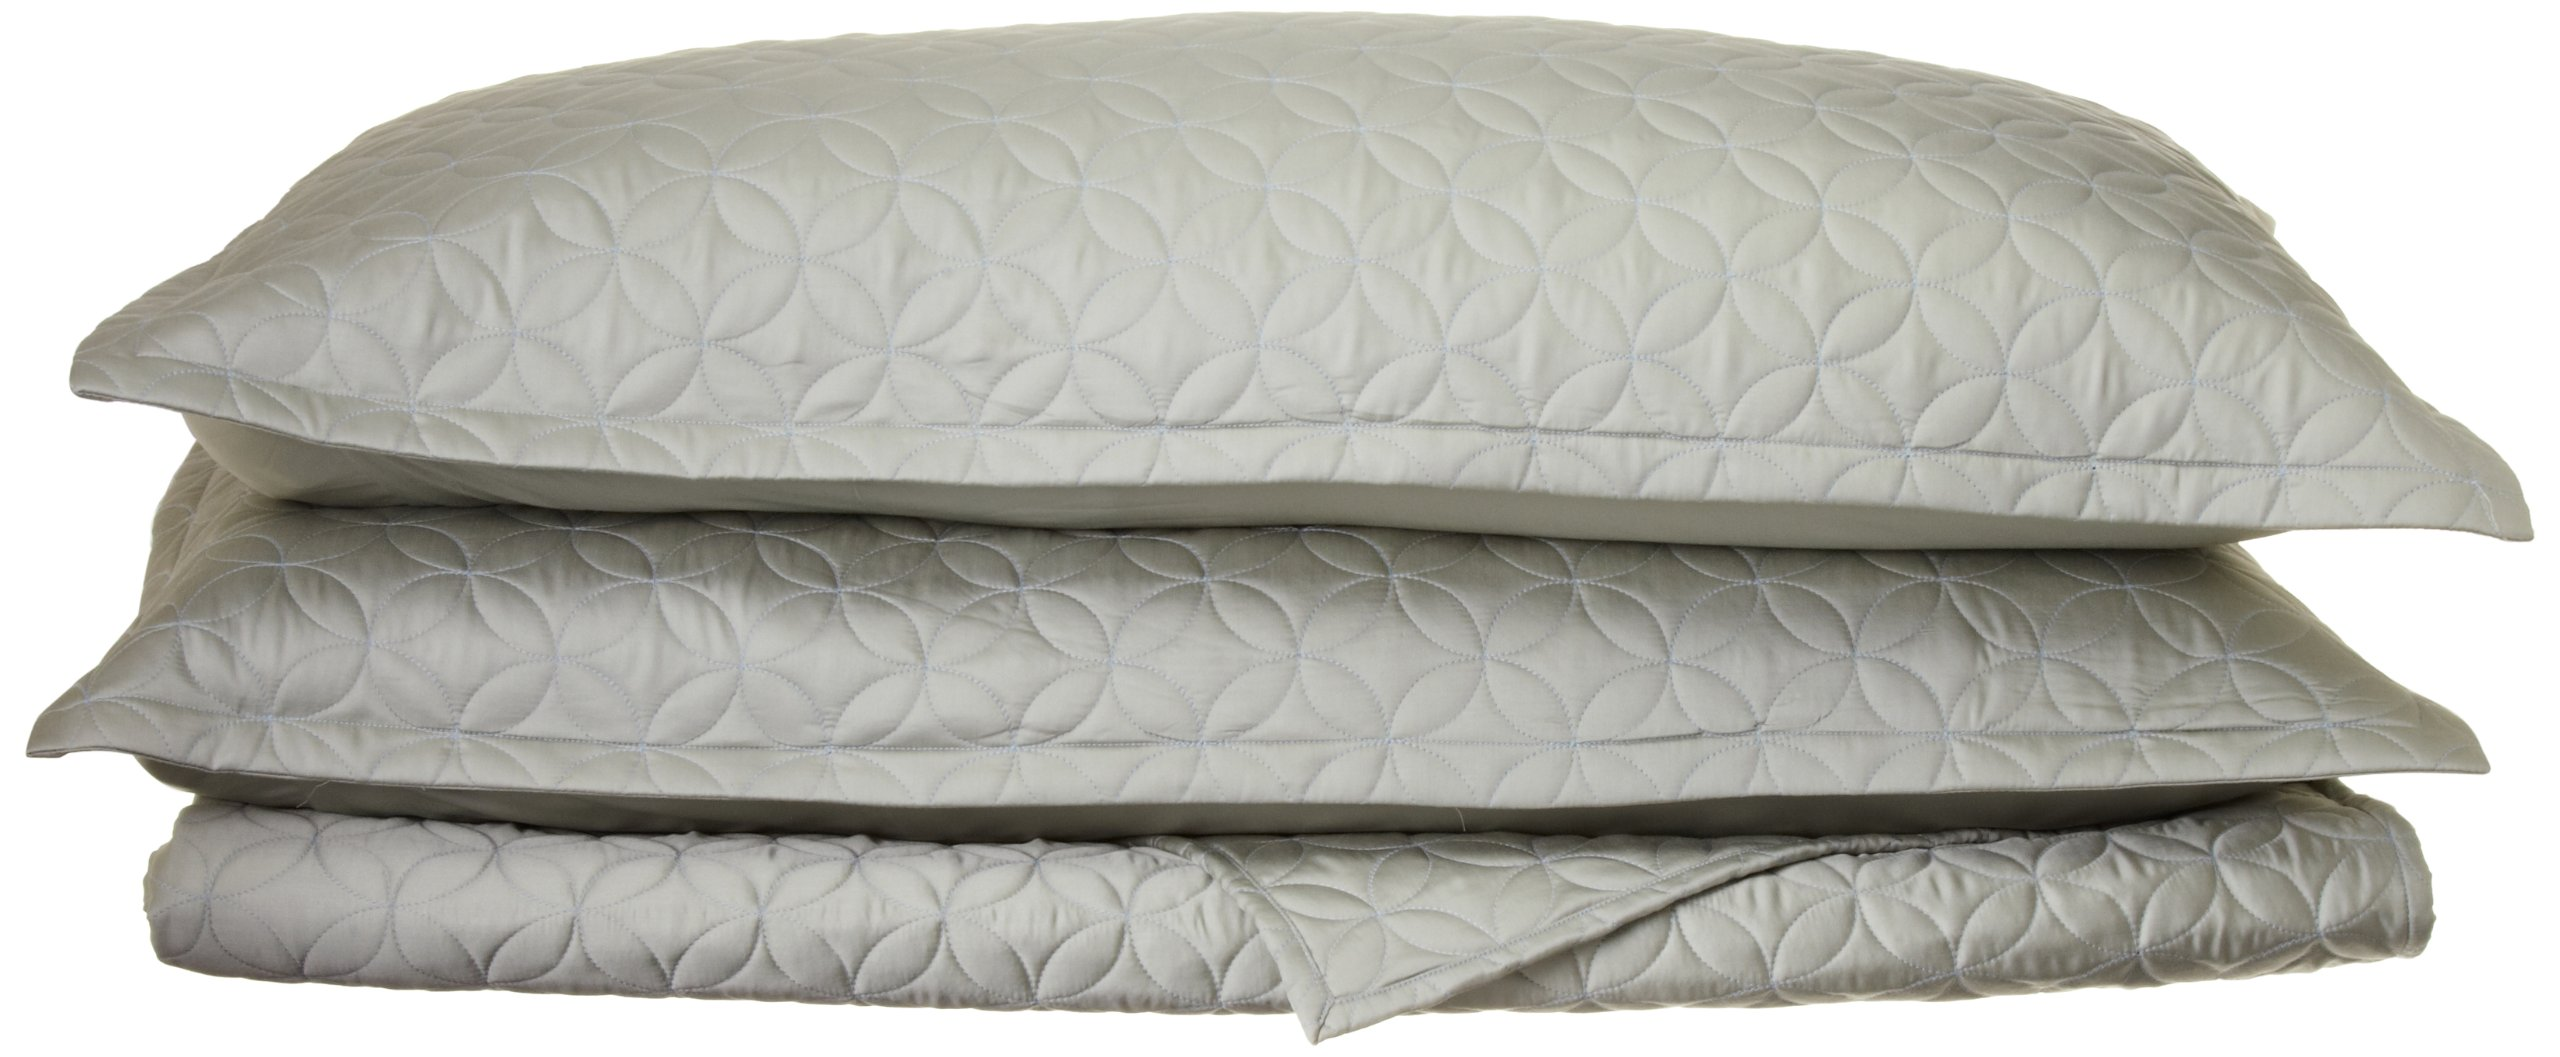 Tuscany Fine Linens Livorno Beechwood Modal Quilted Coverlet Set, Seafoam, Queen Oversized